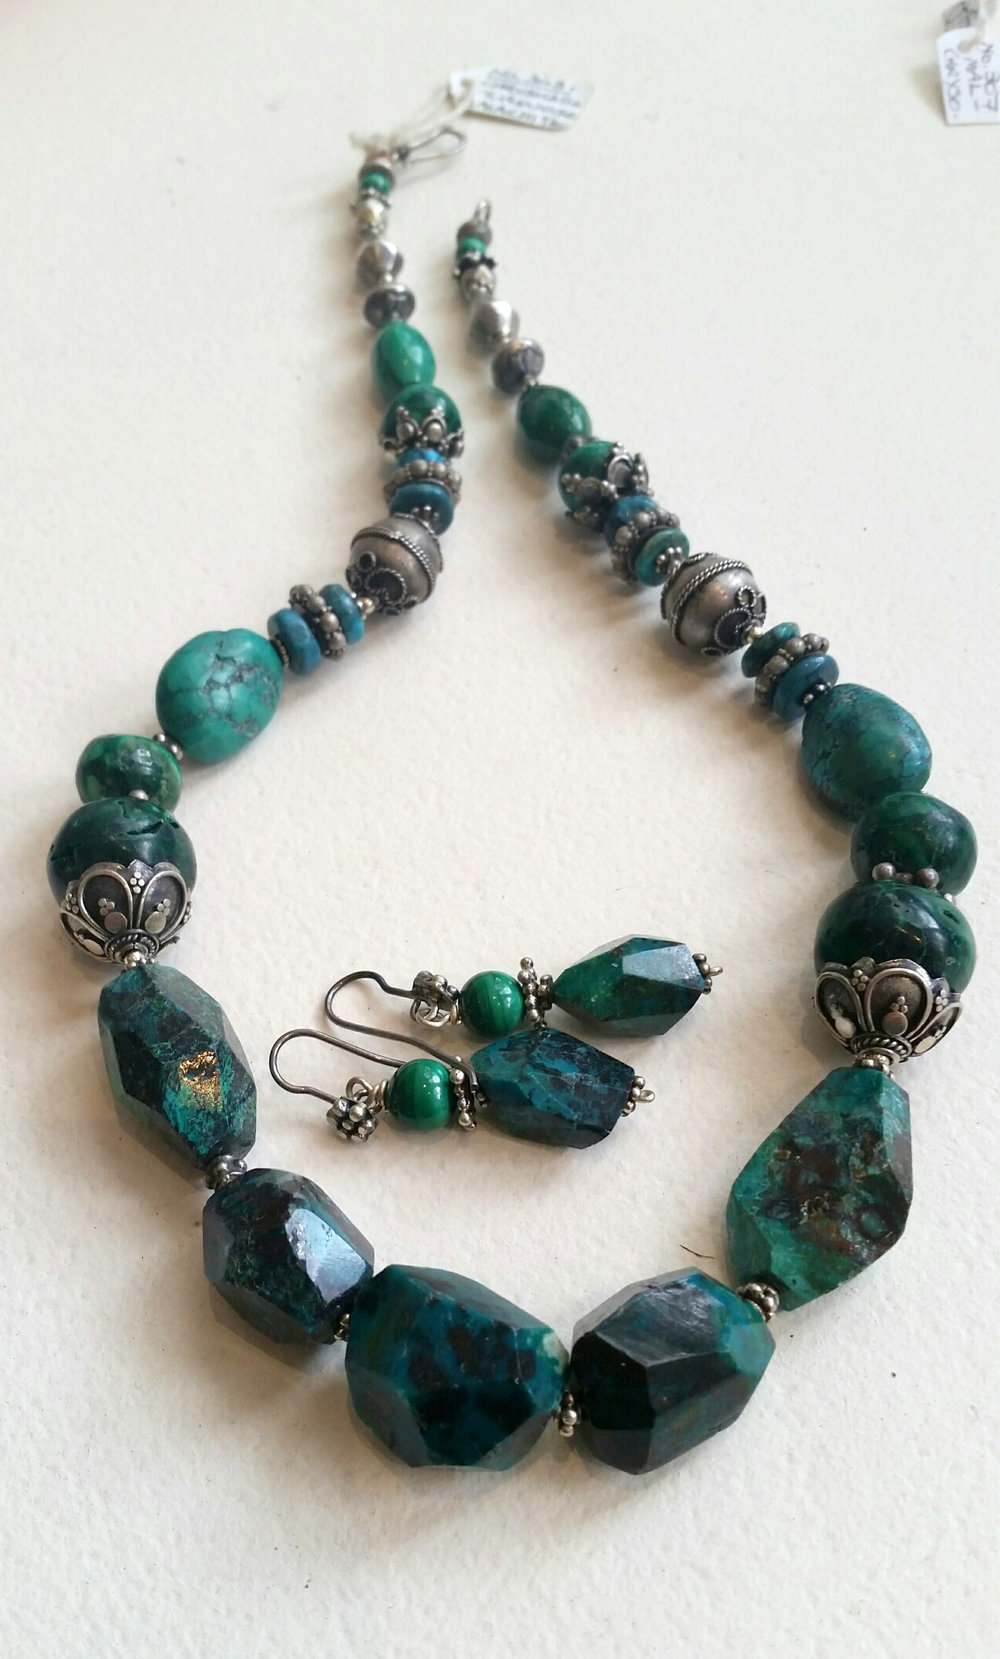 Title: Chrysocollo, Malachite & Turquoise Necklace #303